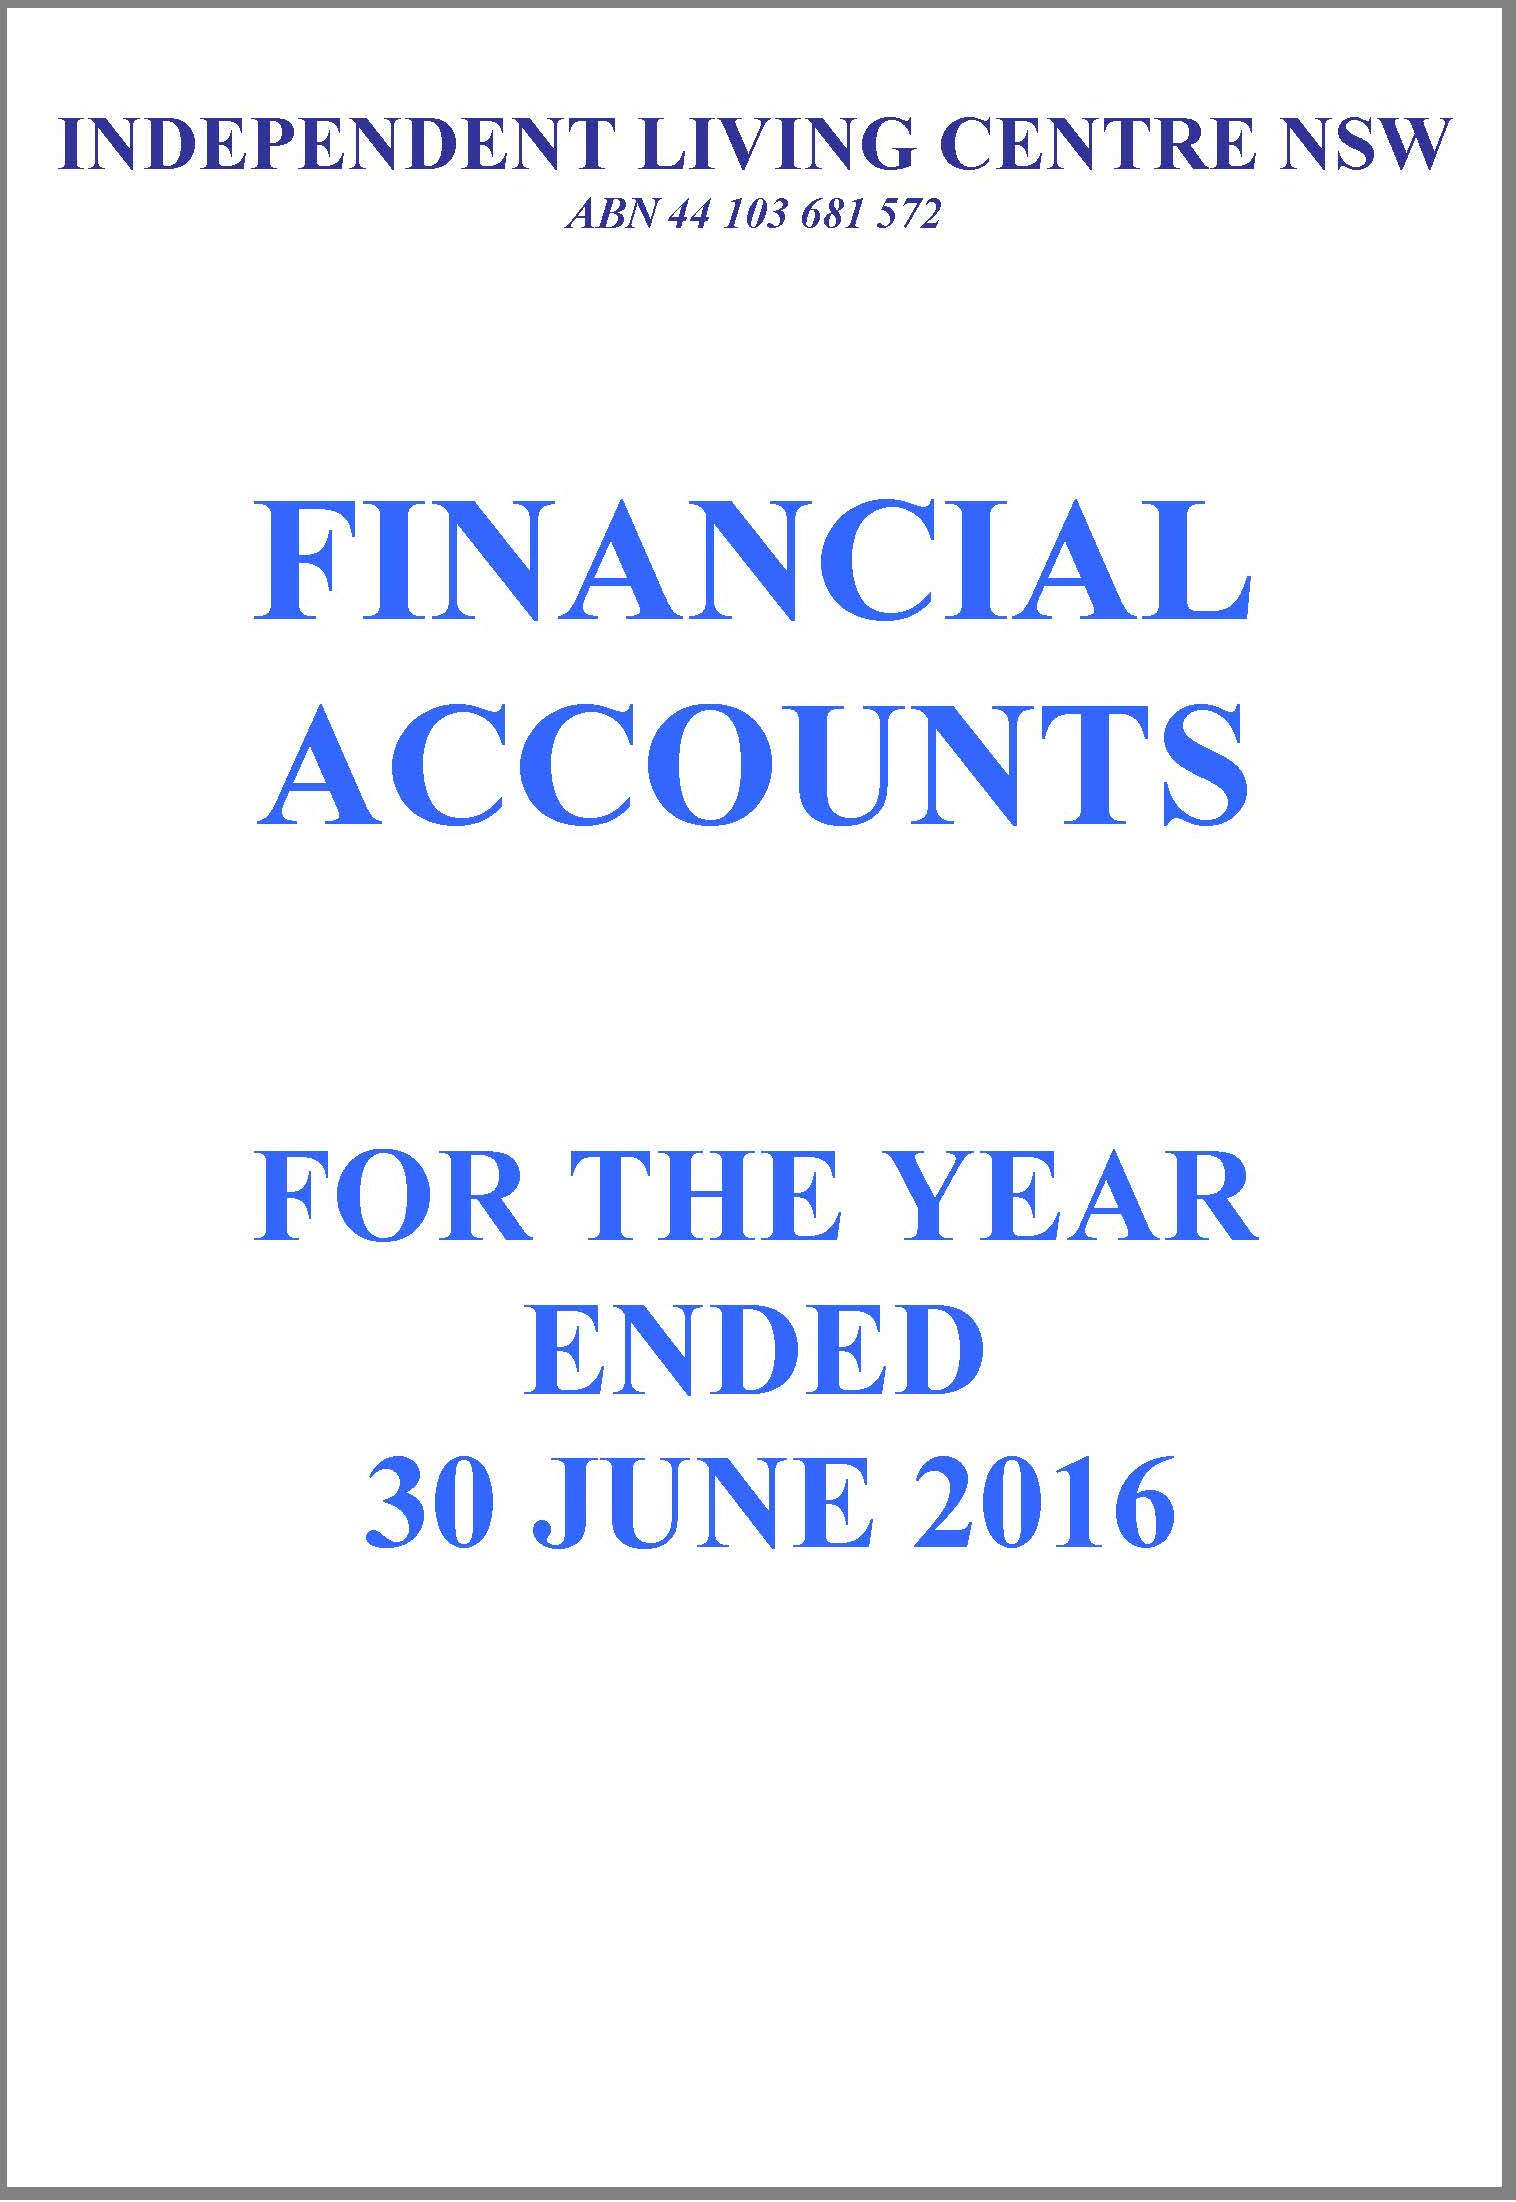 2015-2016 ILC Financial Report